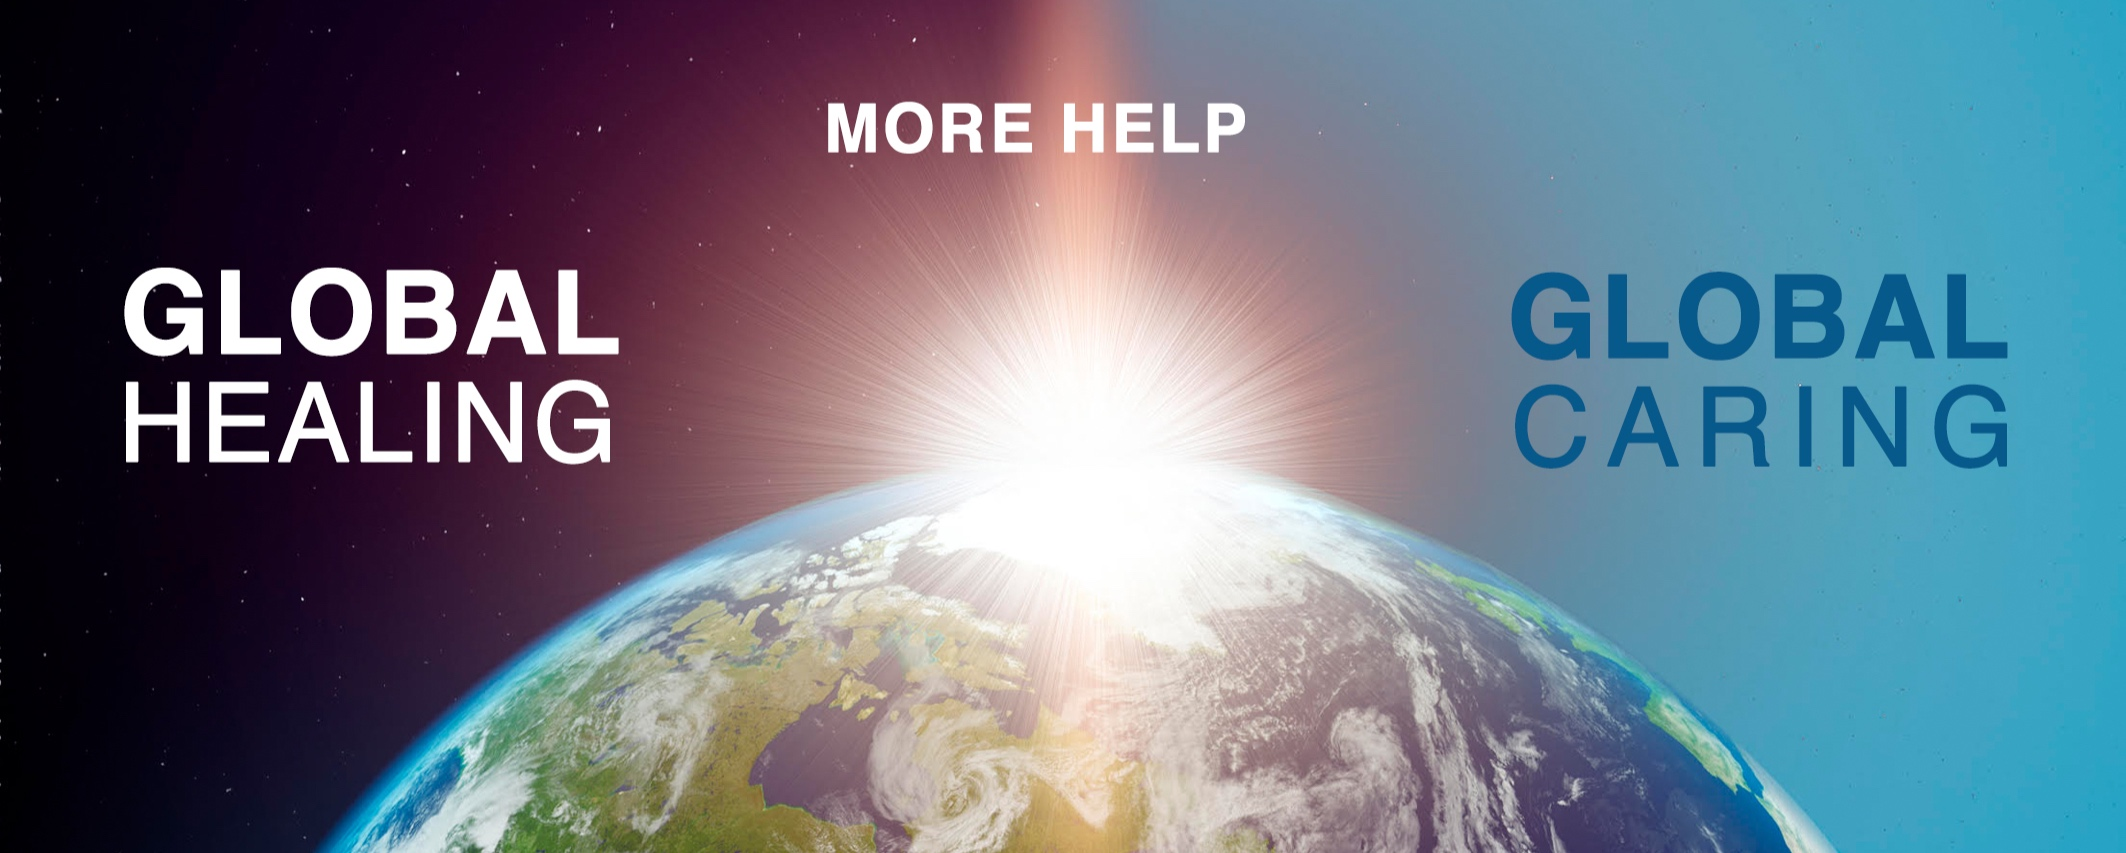 Global Healing, Global Caring, Environment, Save the Planet, Pope, Pope Francis, Care for our Common Home, Bishop John Arnold, Eden, FaithCafe, CaFE